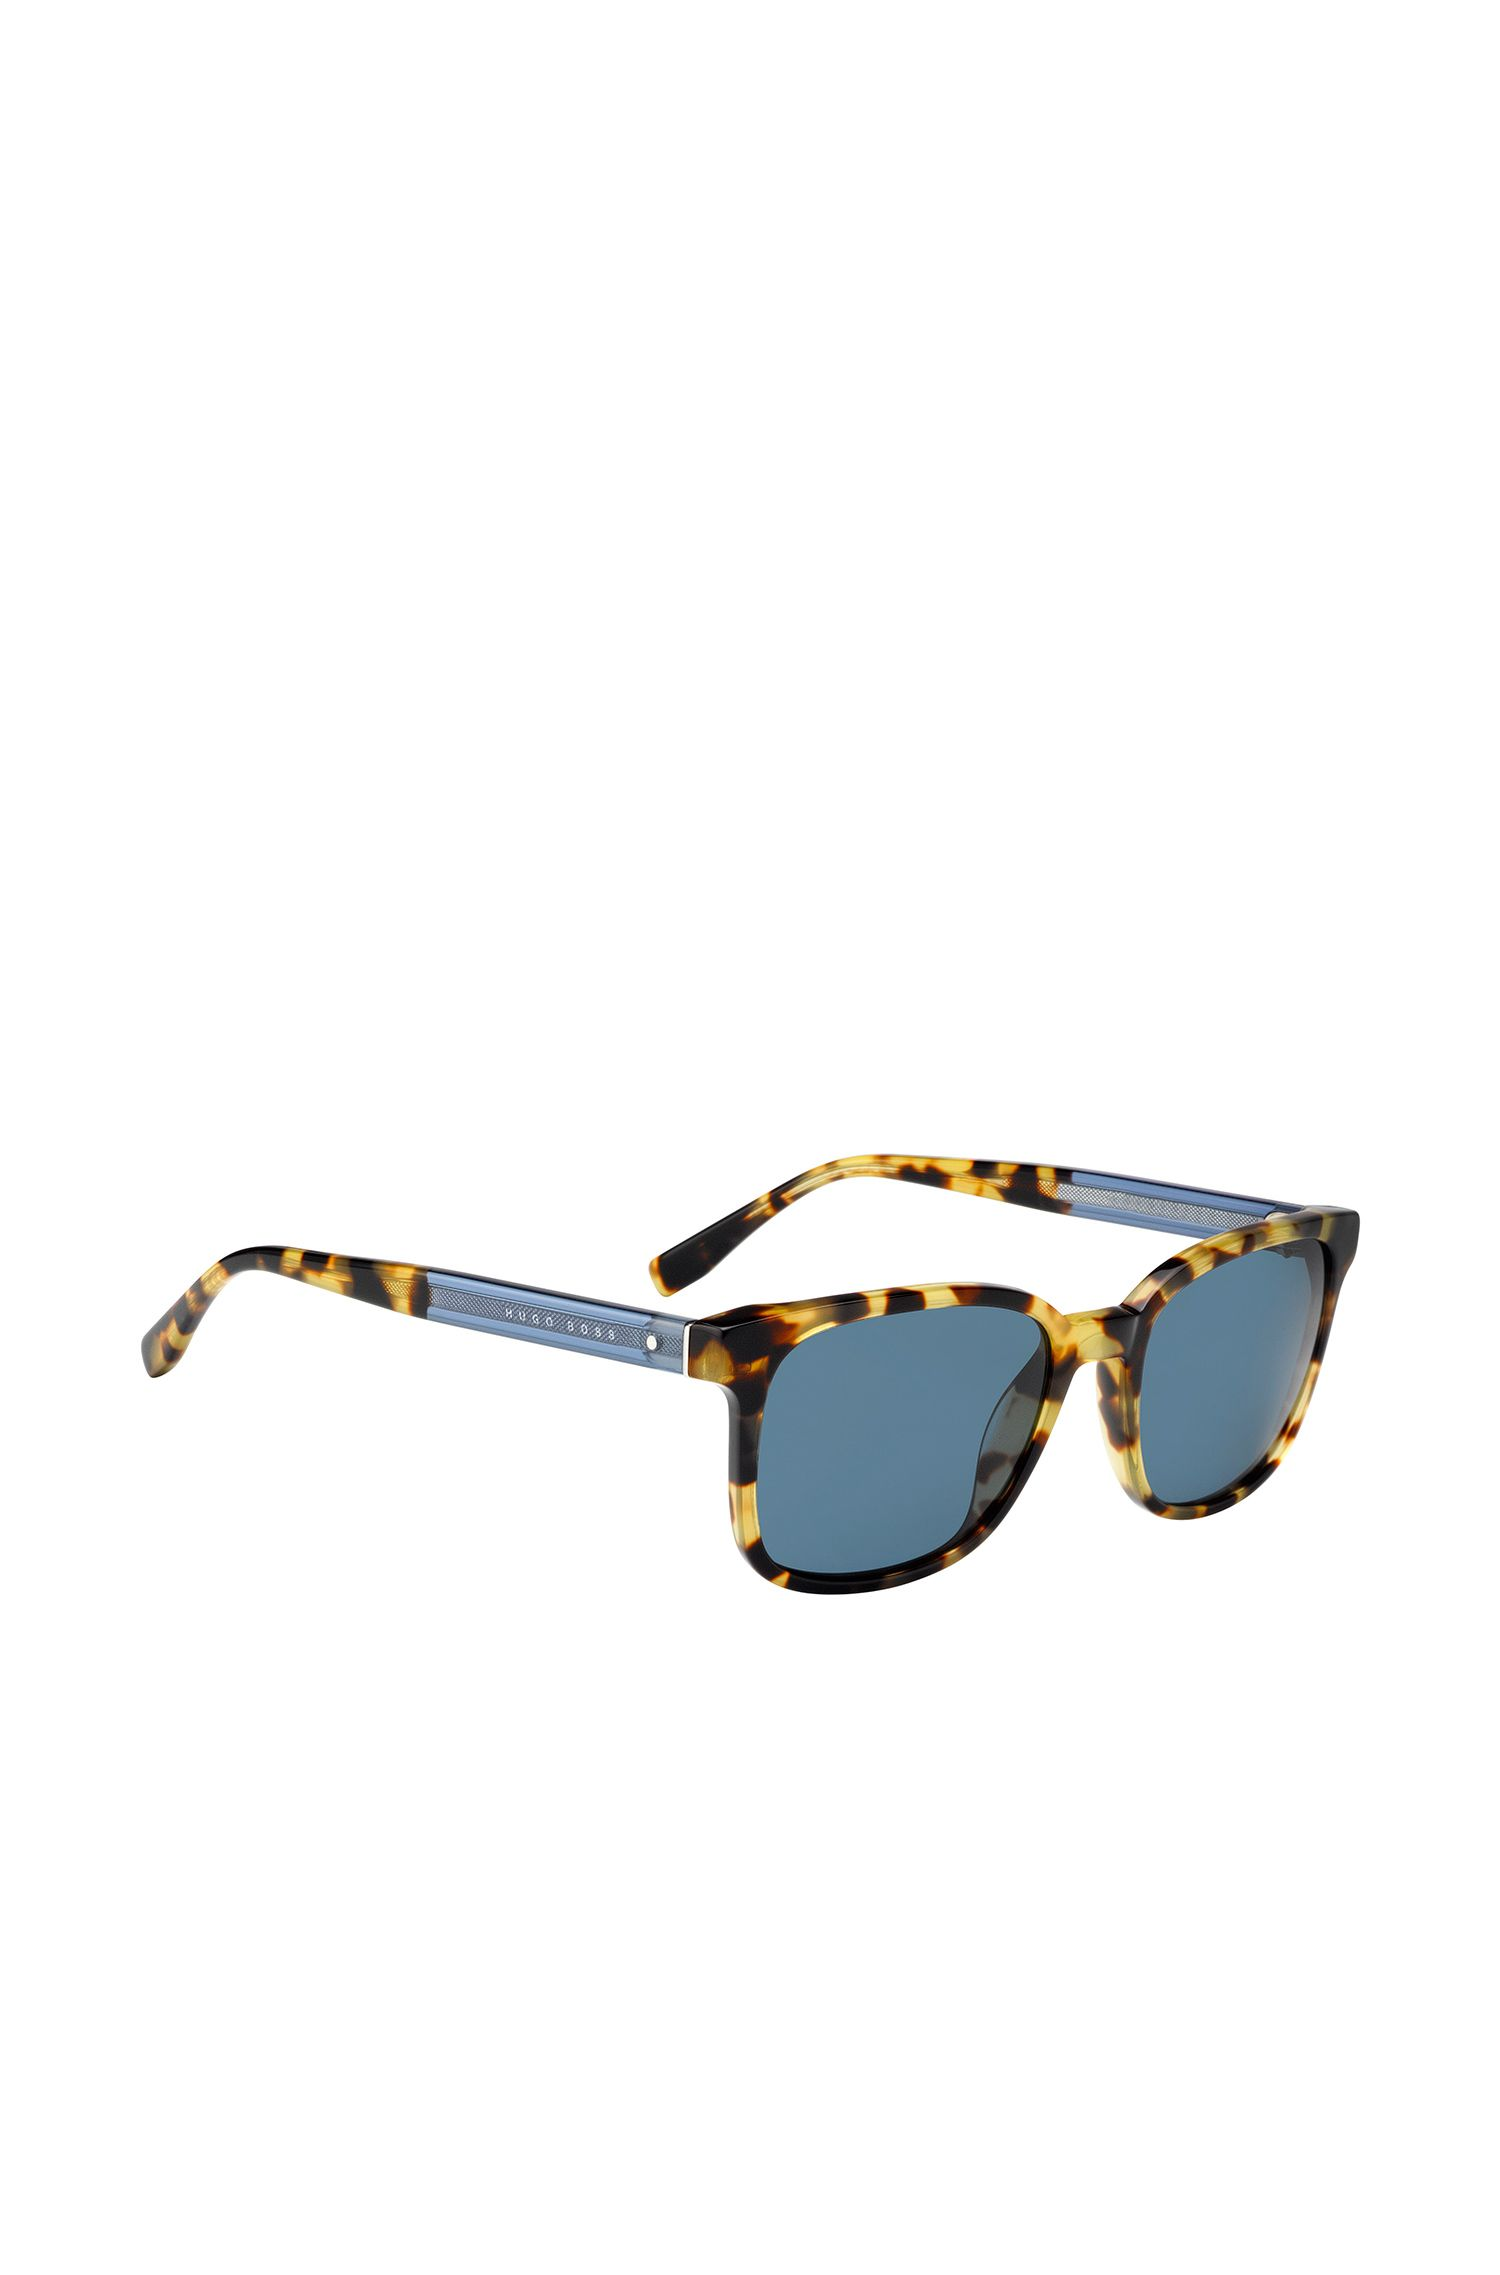 'BOSS 0802S' | Blue Lens Square Sunglasses